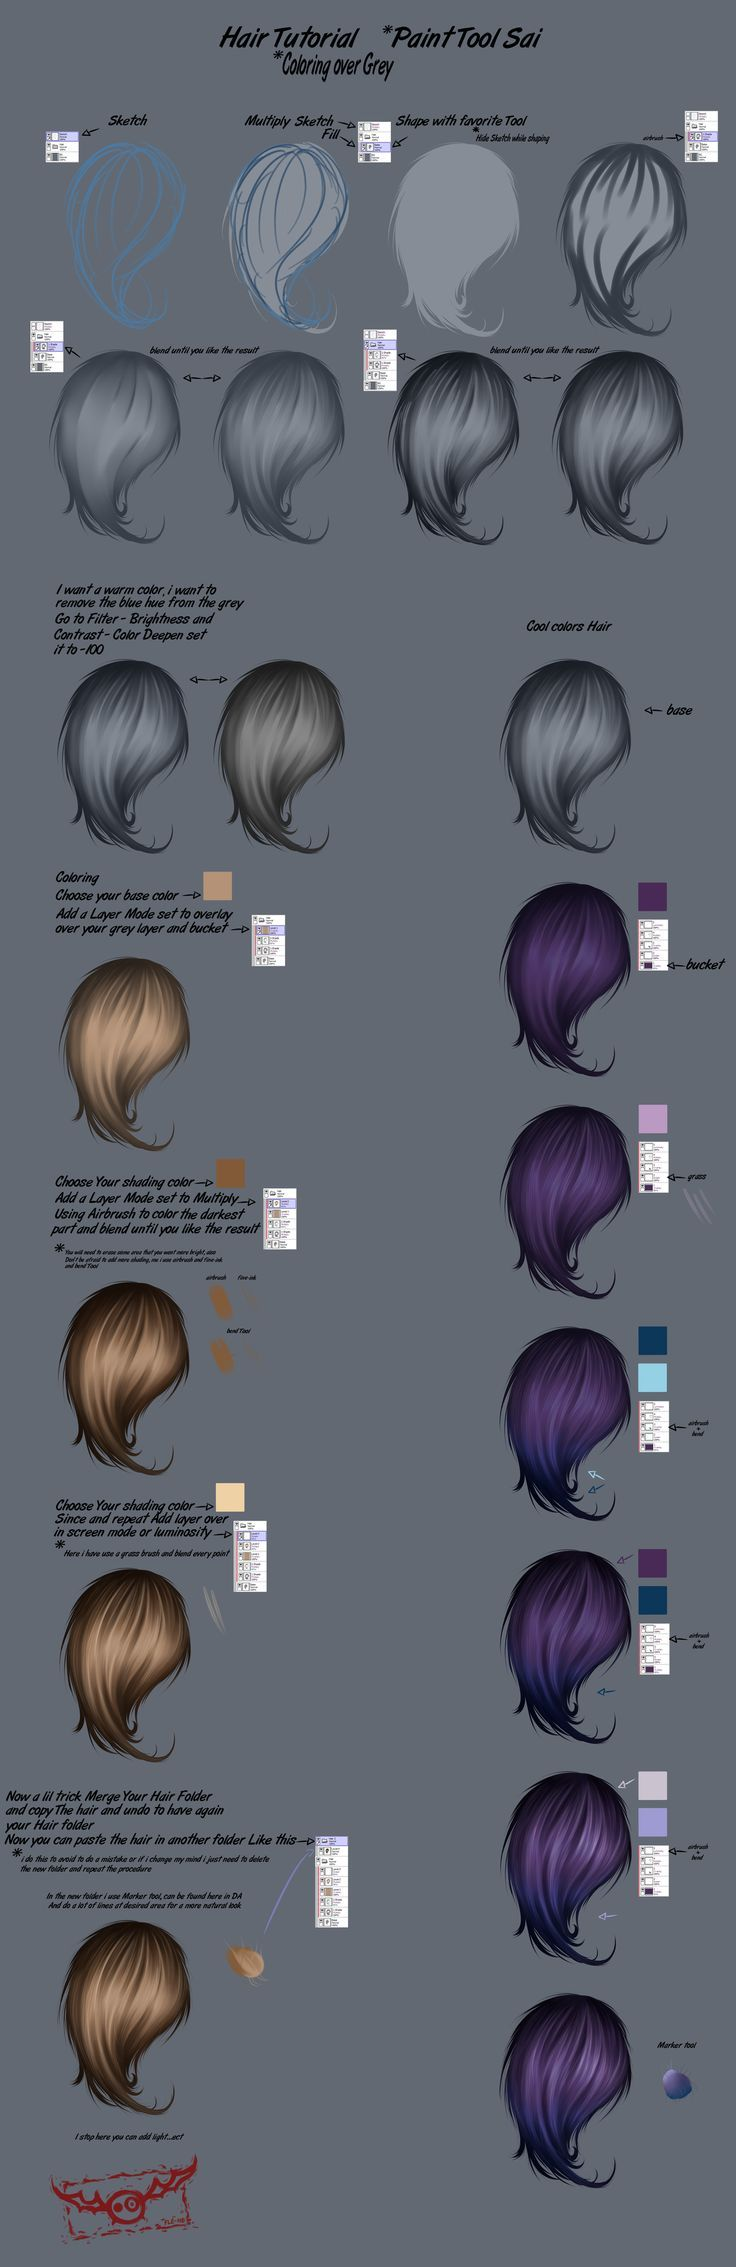 Hair Step By Step Tutorial (Paint Tool Sai) 2 by FleNB.deviantart.com on @DeviantArt